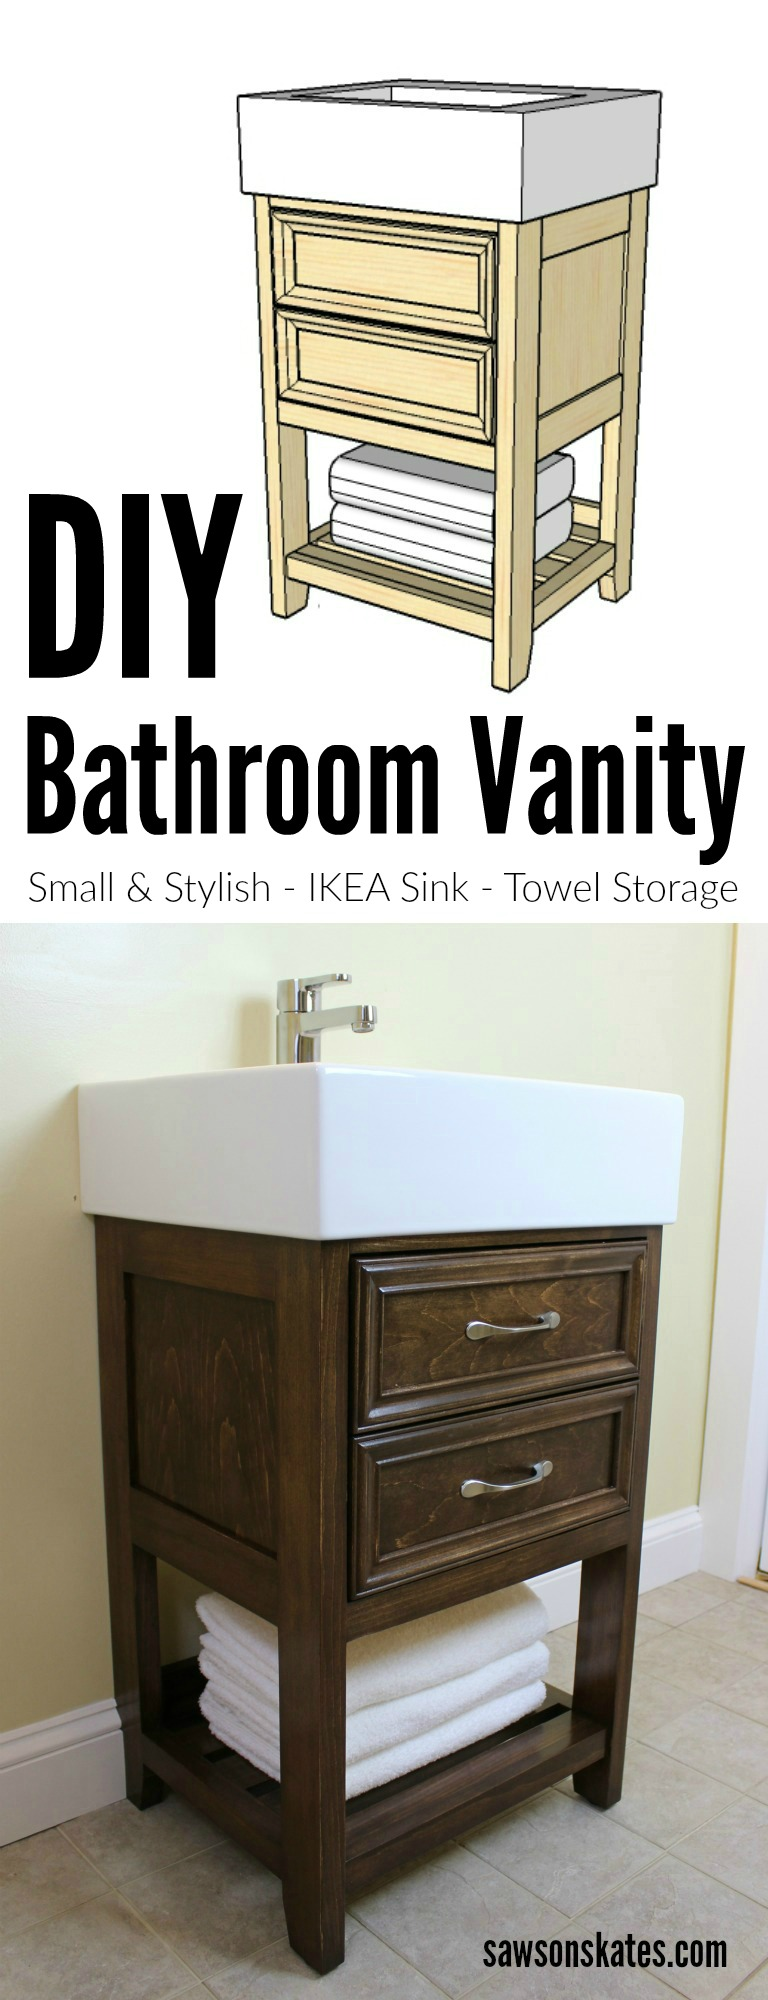 Looking For Small DIY Bathroom Vanity Ideas Check Out The Plans This